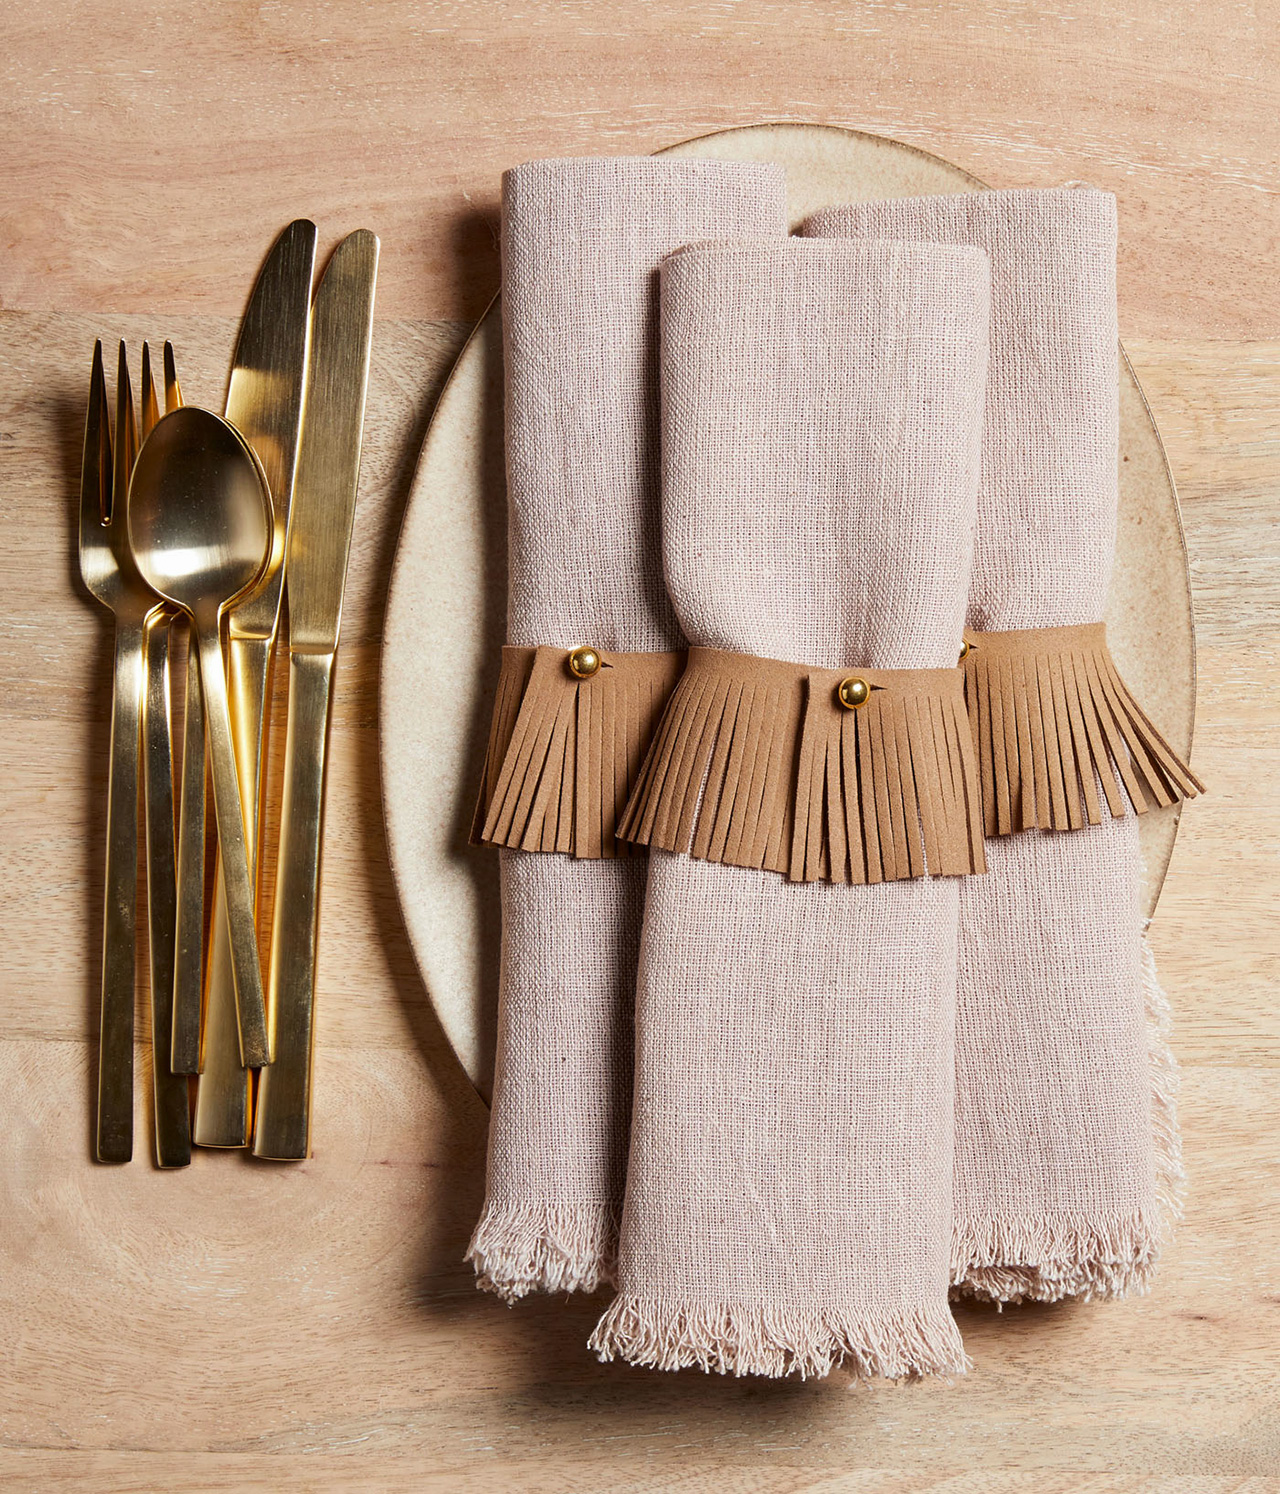 natural place setting crafts napkin holder skirt gold silverware